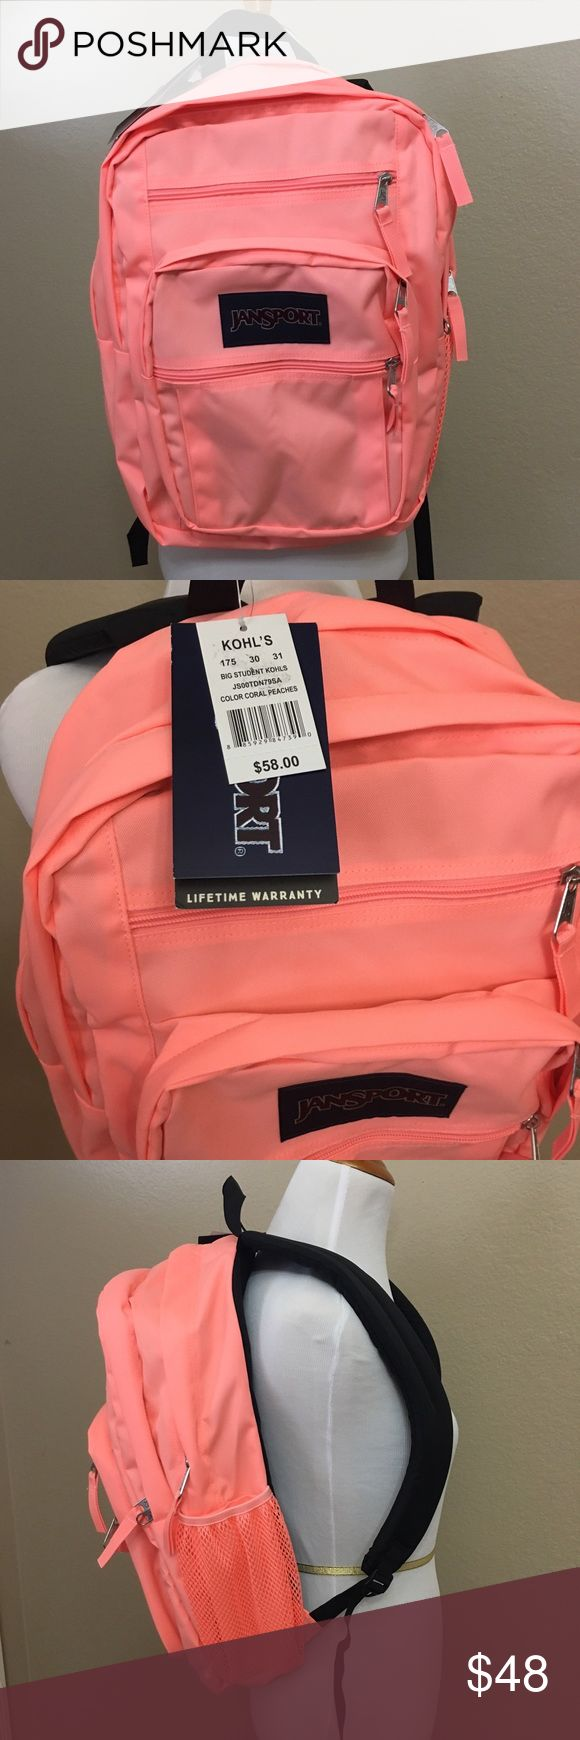 Cute coral Jansport backpack This is a brand new with tags coral colored Jansport backpack. No flaws. This backpack has various compartments to store everyday necessities! Even has a side pouch for a water bottle or coffee mug. Also selling a pink Jansport in my closet. Jansport Bags Backpacks